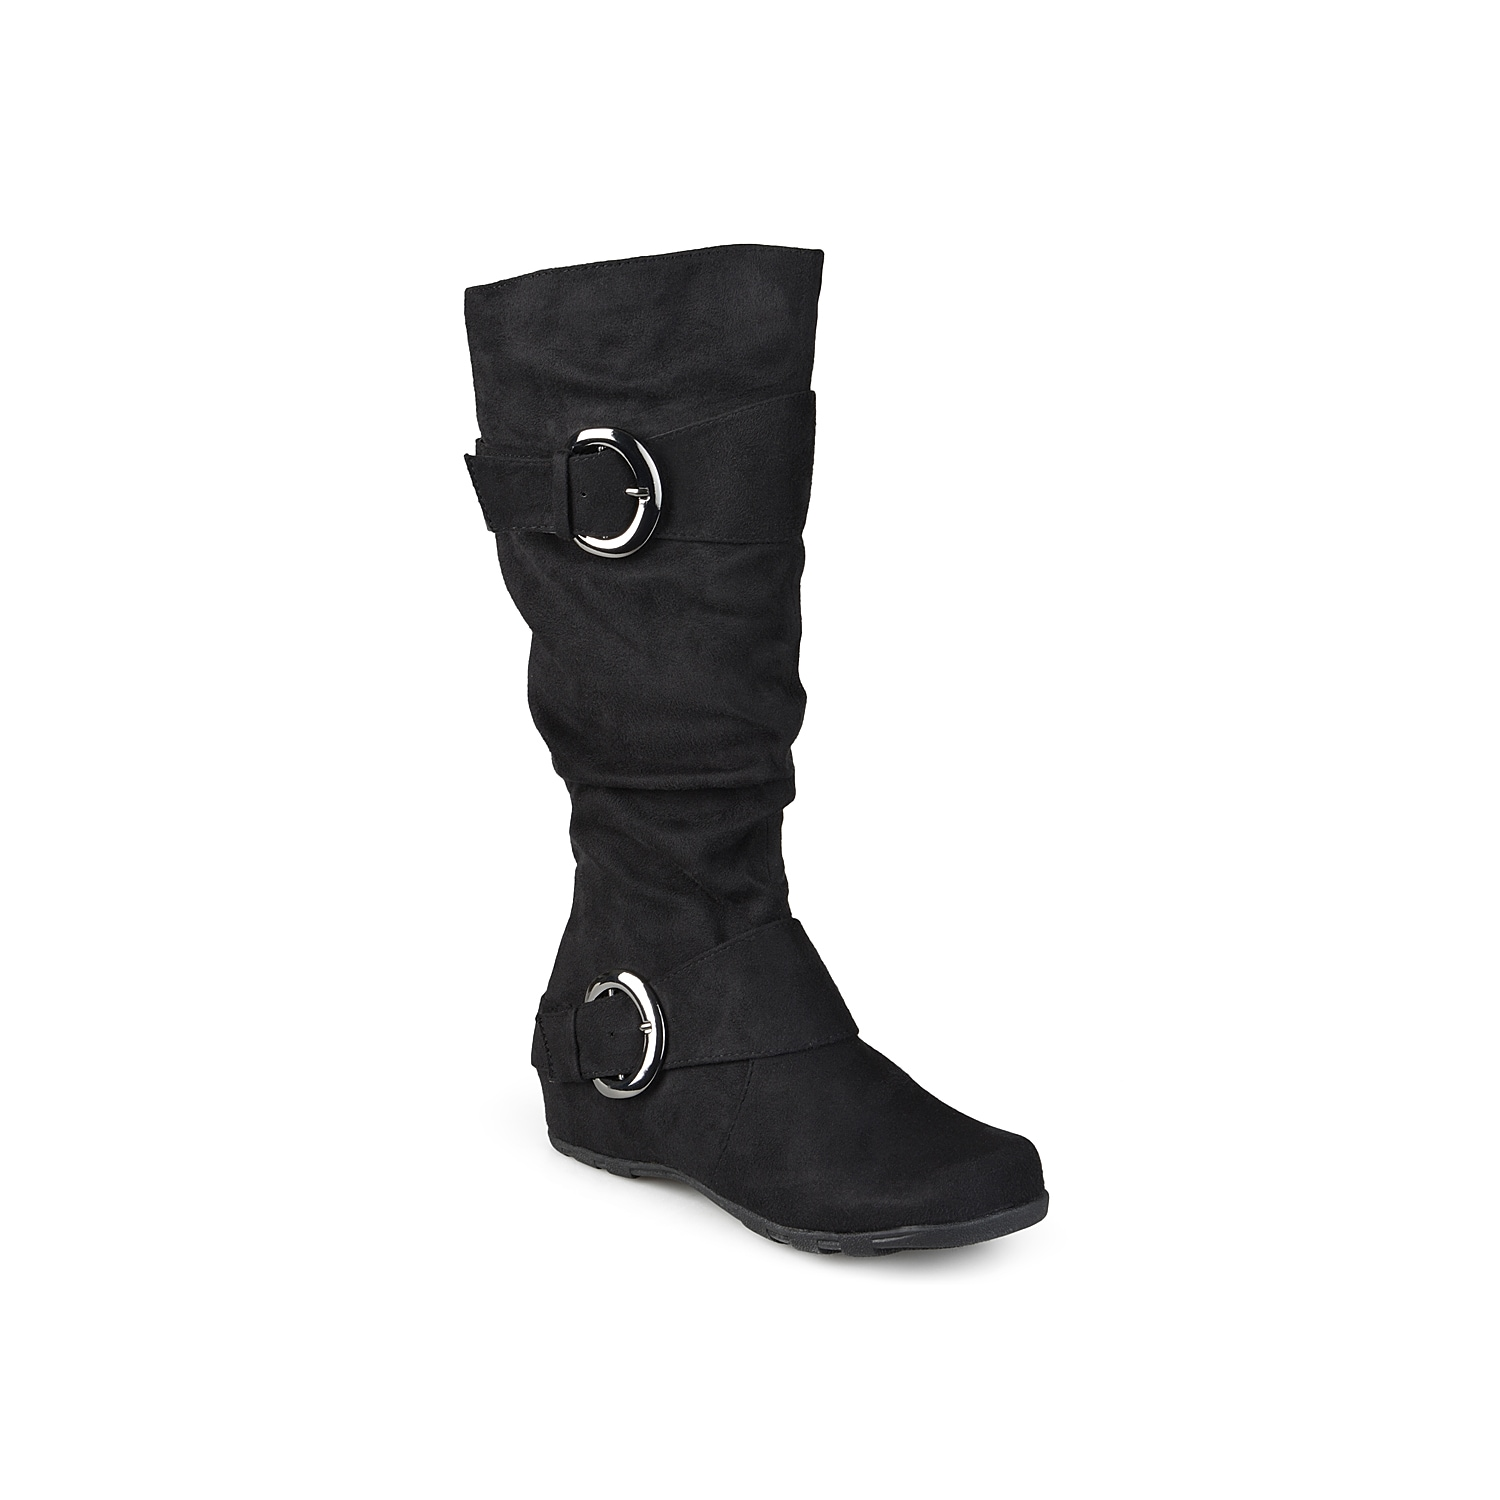 Searching for a basic tall boot to complete your casual wardrobe? Journee Collection has you covered with the Jester. With a slouchy silhouette and polished buckle accents, these versatile knee high boots will pair great with jeans or leggings. Click here for Boot Measuring Guide.